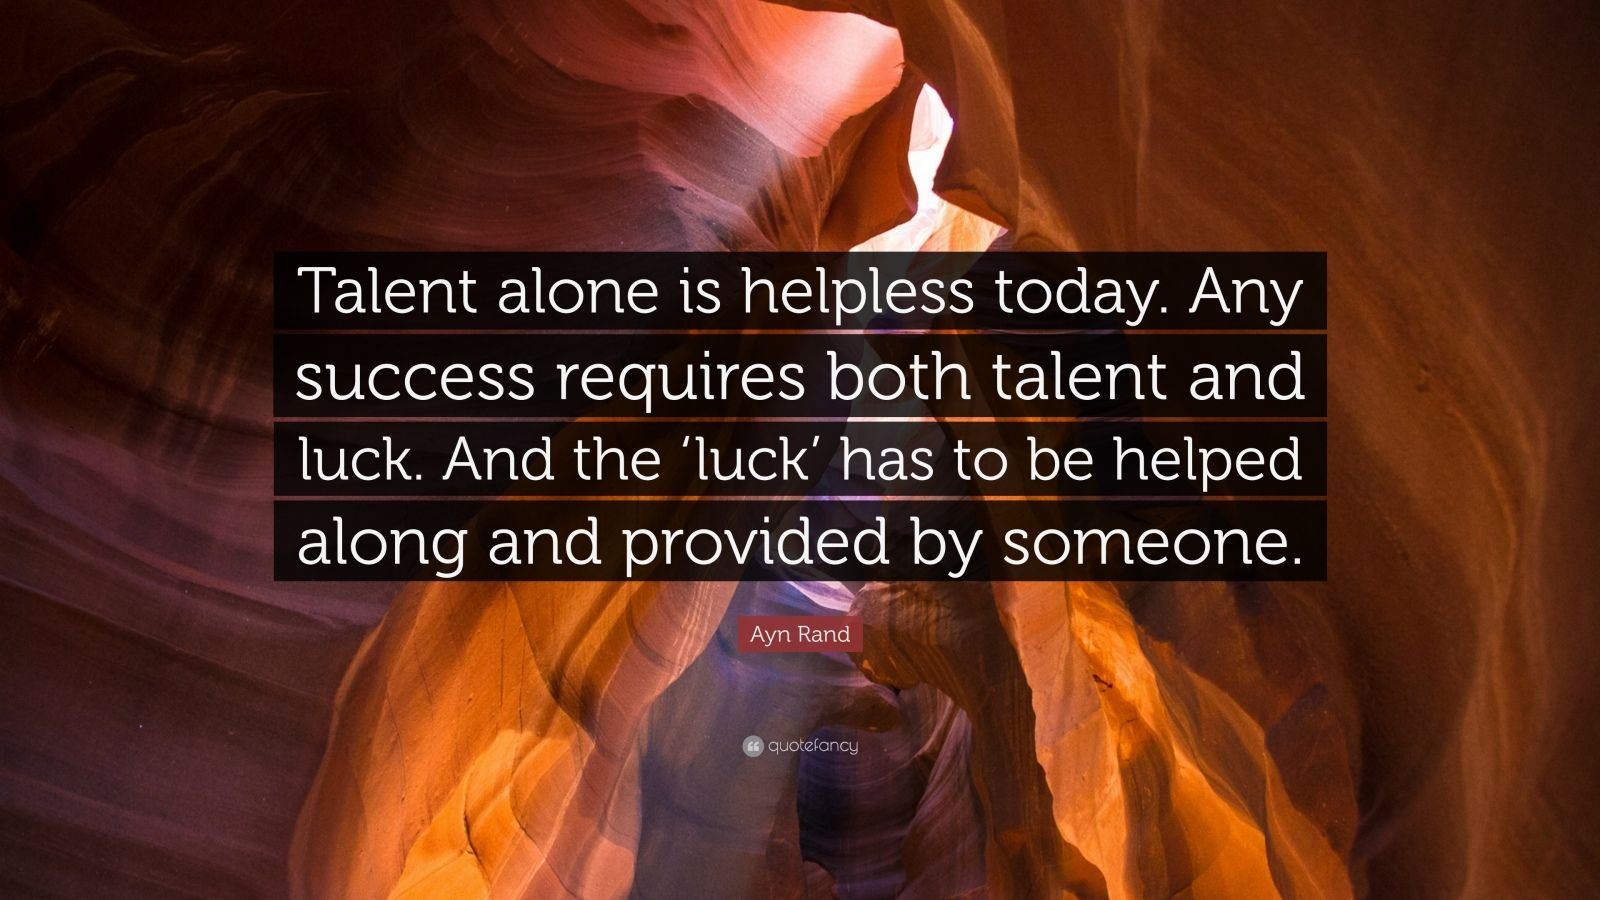 """Ayn Rand Quote: """"Talent alone is helpless today. Any success requires both talent and luck. And the 'luck' has to be helped along and provided by someone."""""""